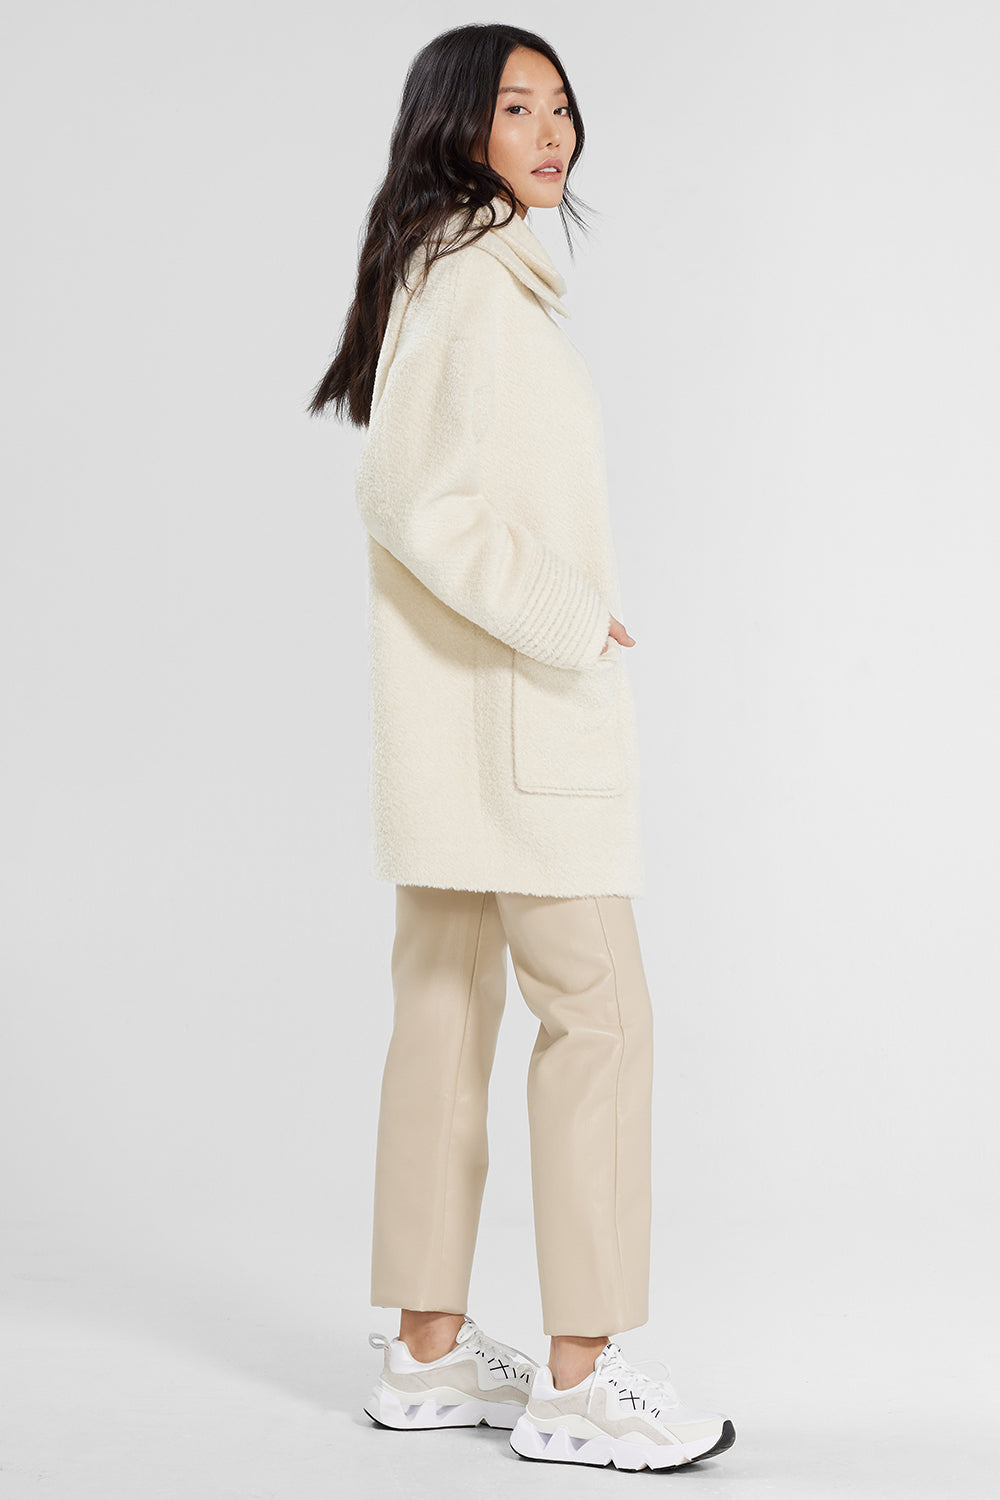 Sentaler Bouclé Alpaca Mid Length Oversized Coat with Signature Double Collar featured in Bouclé Alpaca and available in Ivory. Seen from side.